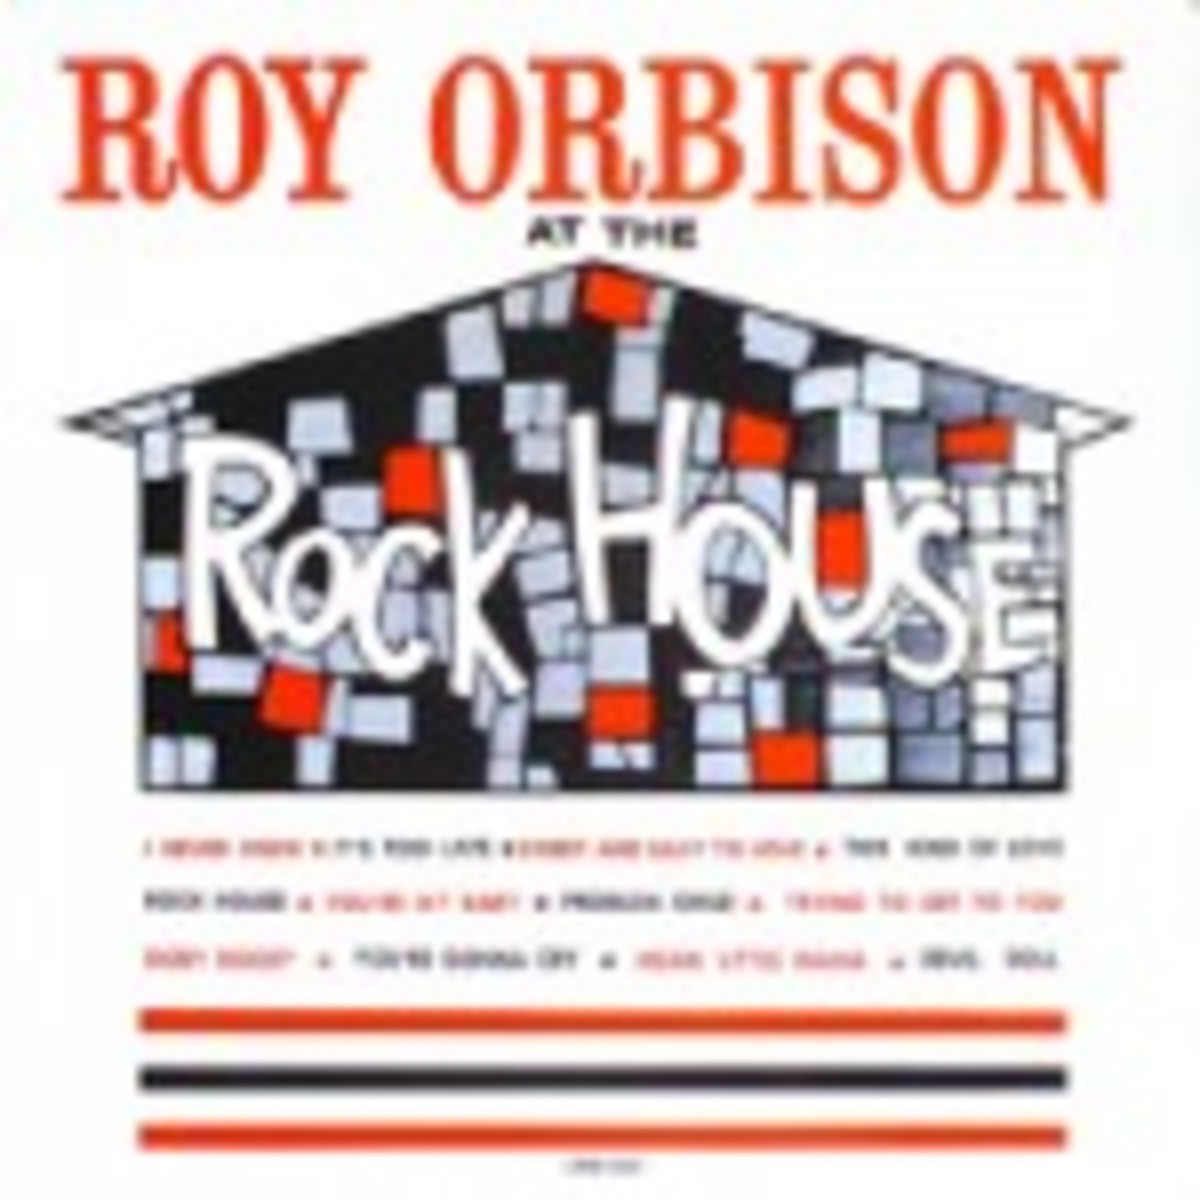 Roy Orbison at the Rock House Record Store Day